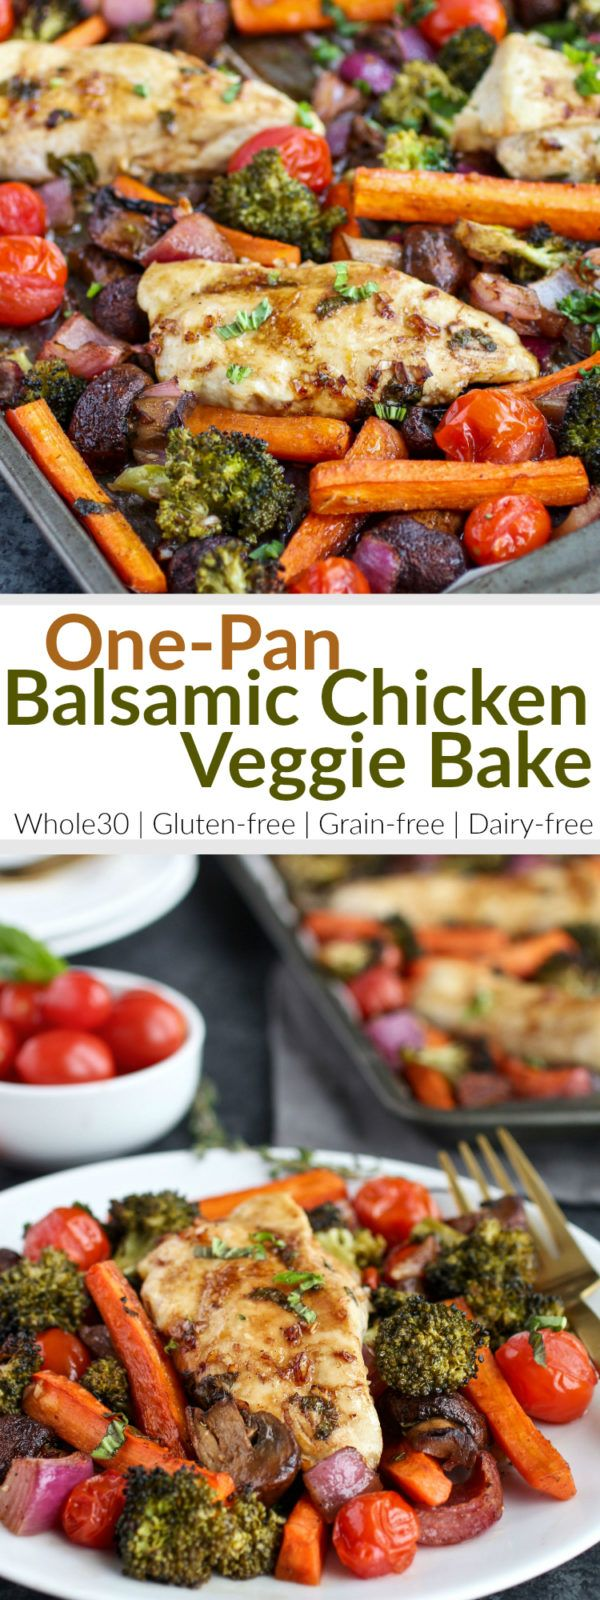 Balsamic chicken veggie bake. Leaving out the chicken obviously